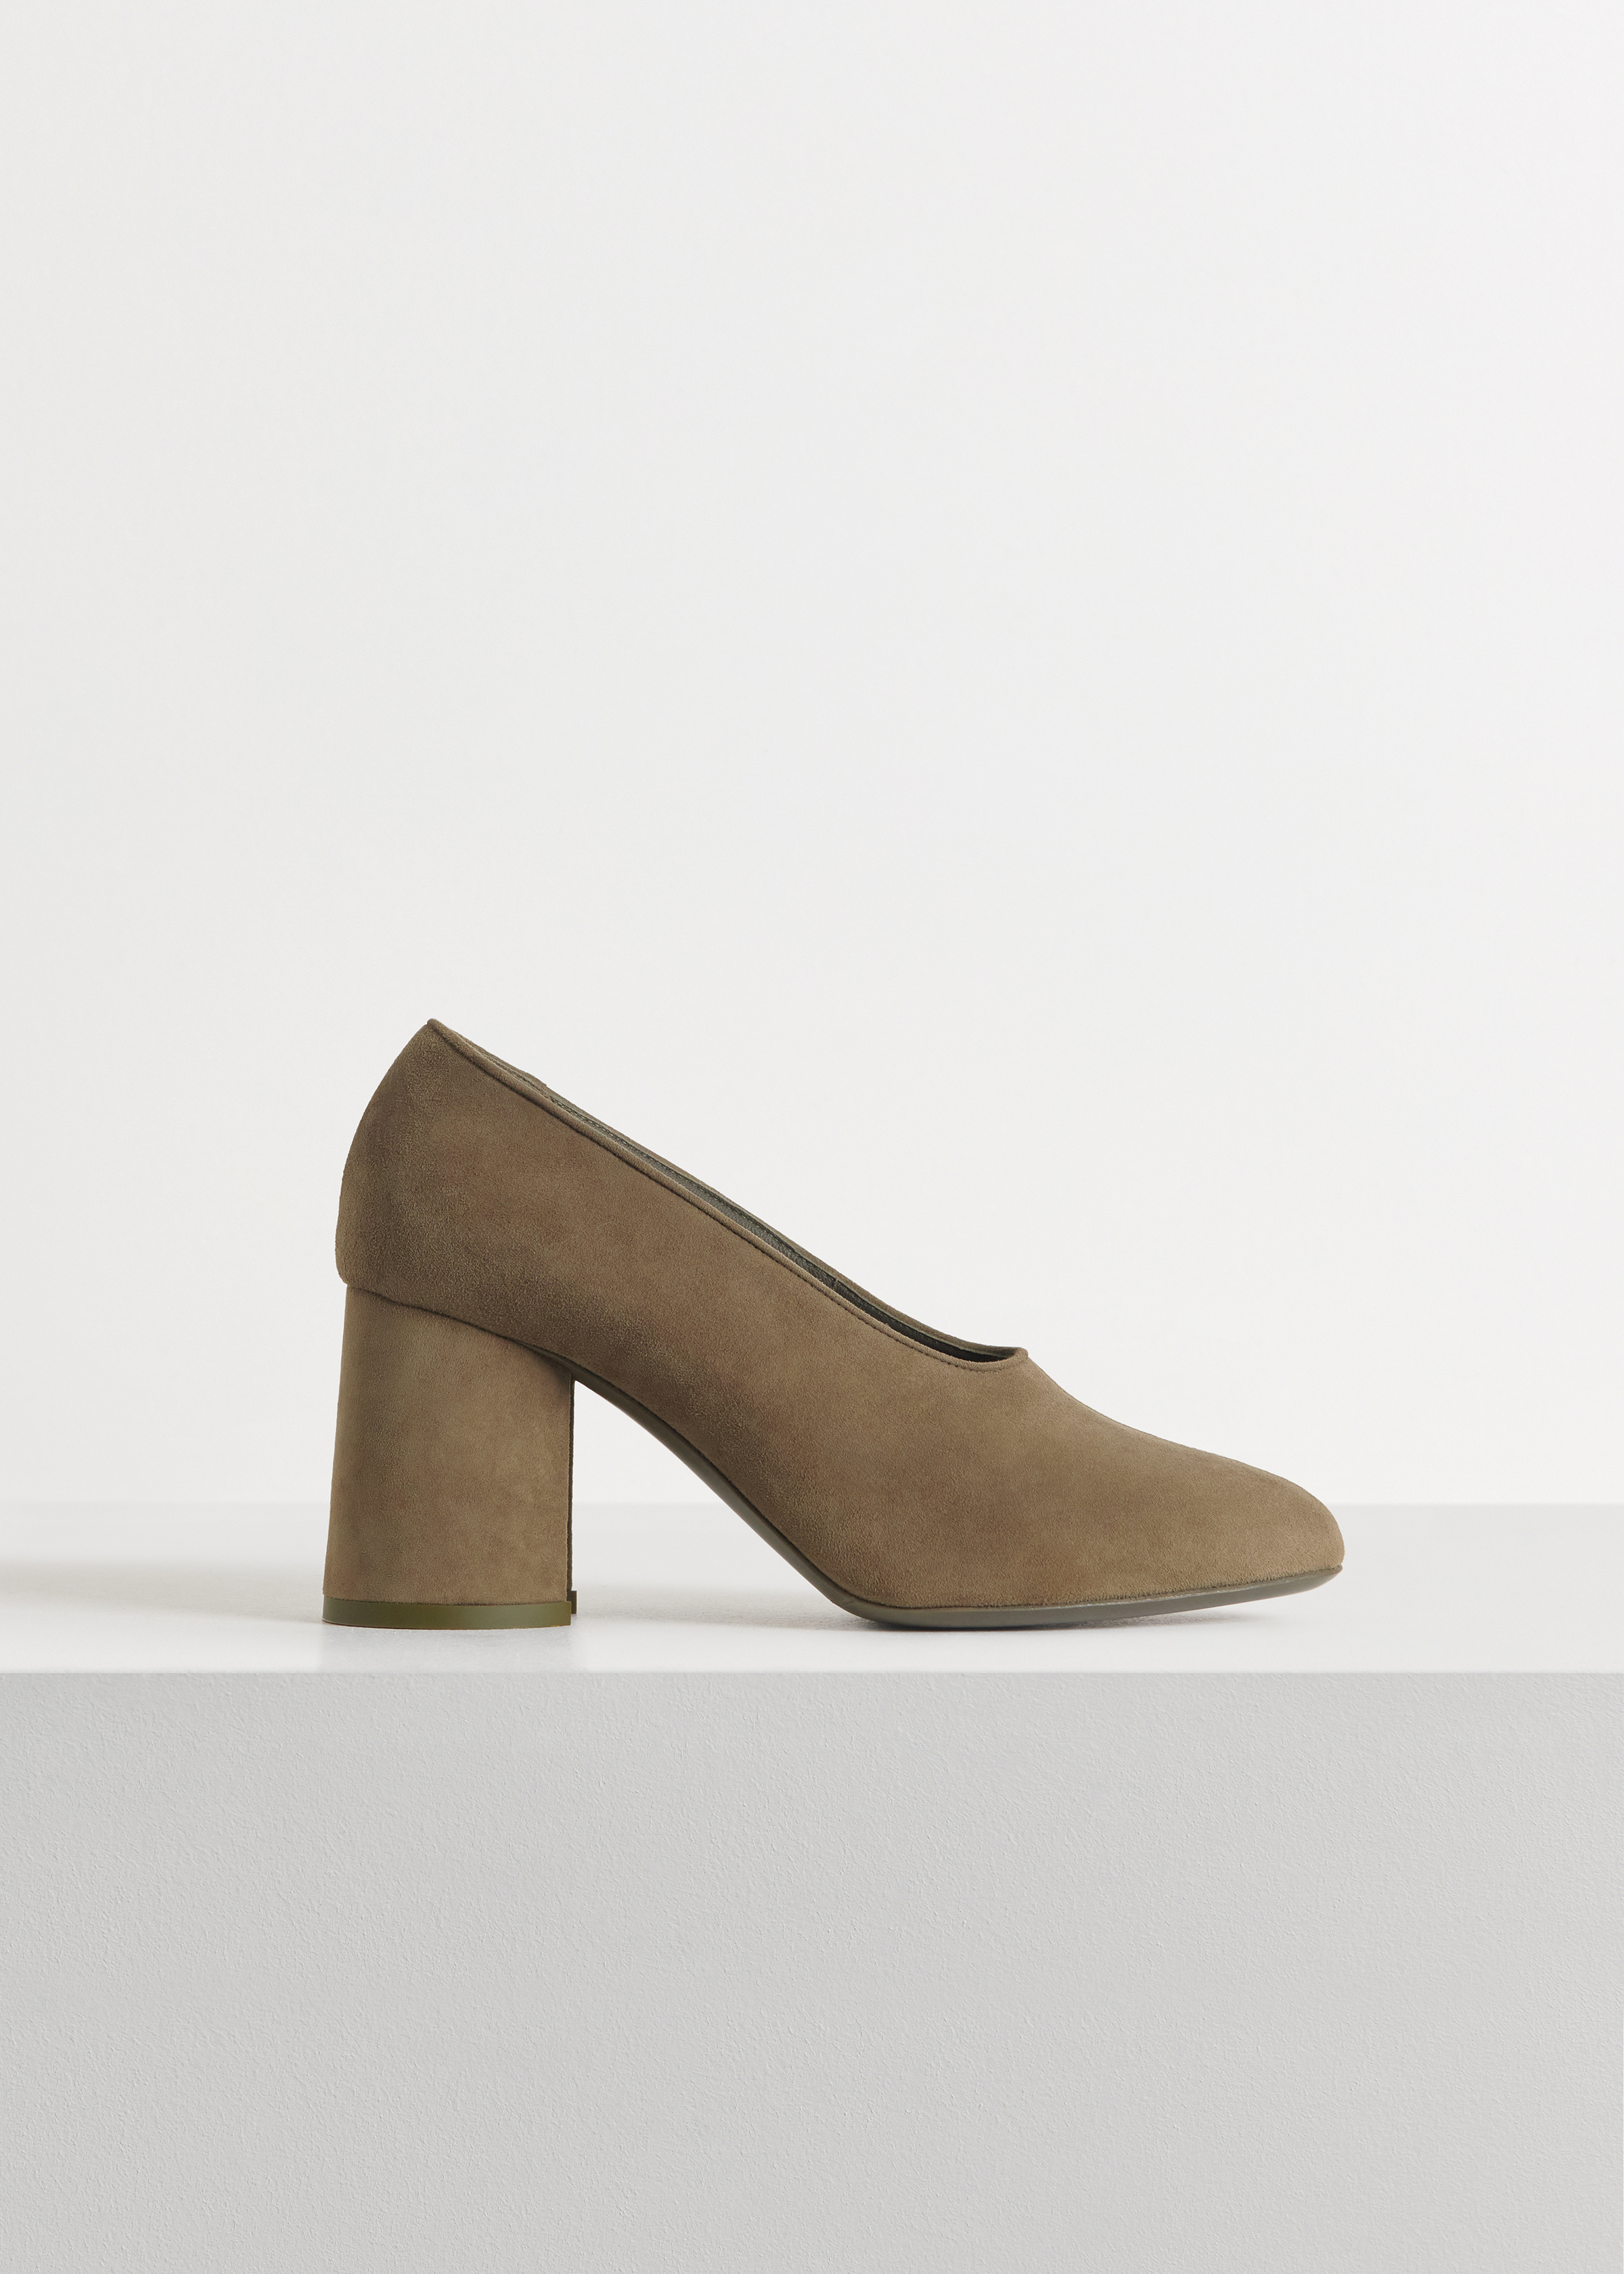 Classic Pump in Suede - Black in Olive by Co Collections